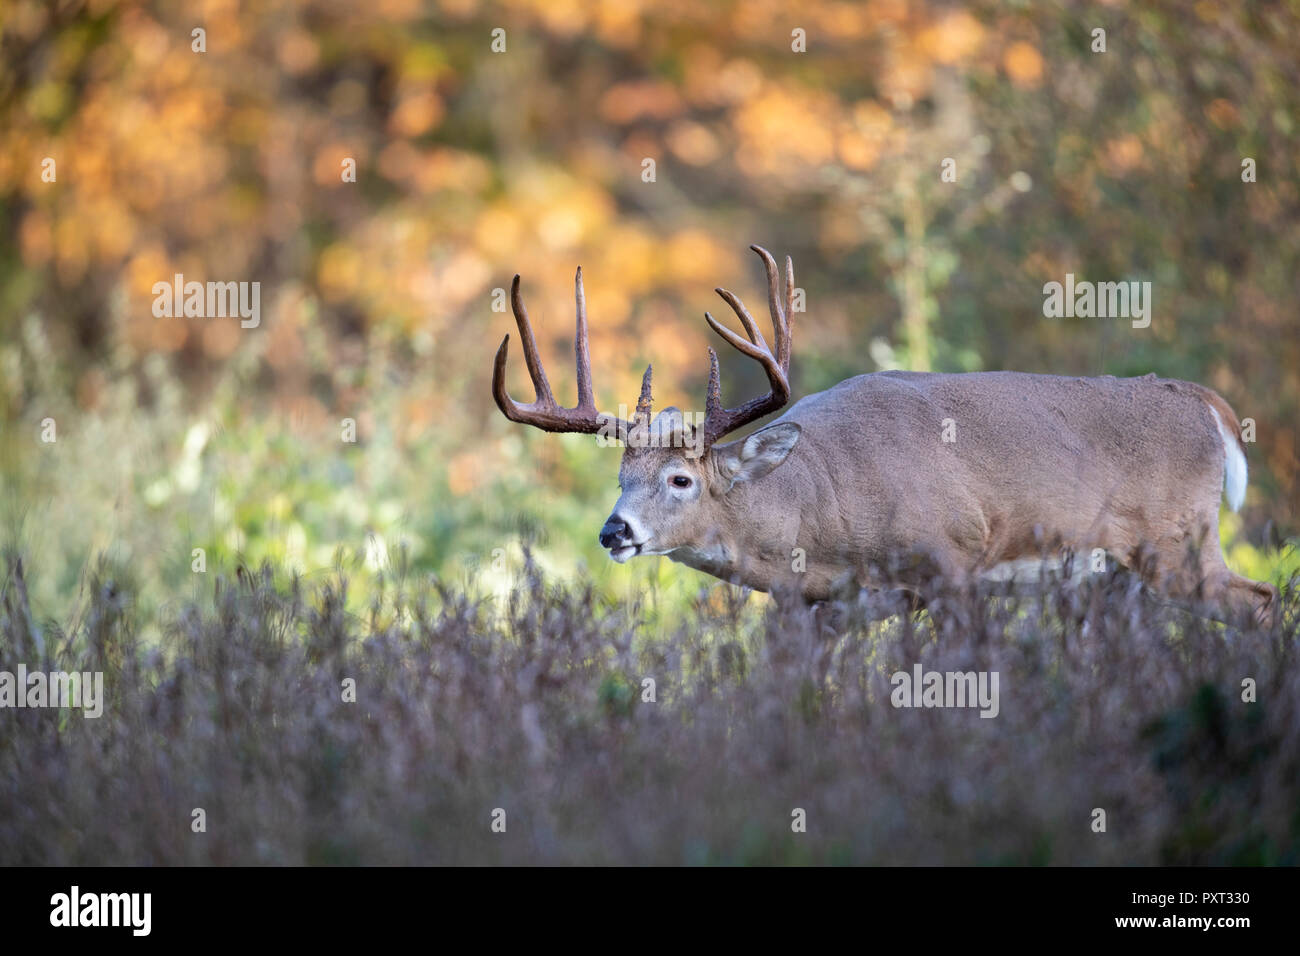 A mature buck white-tailed deer following the trail of females during the rut. - Stock Image